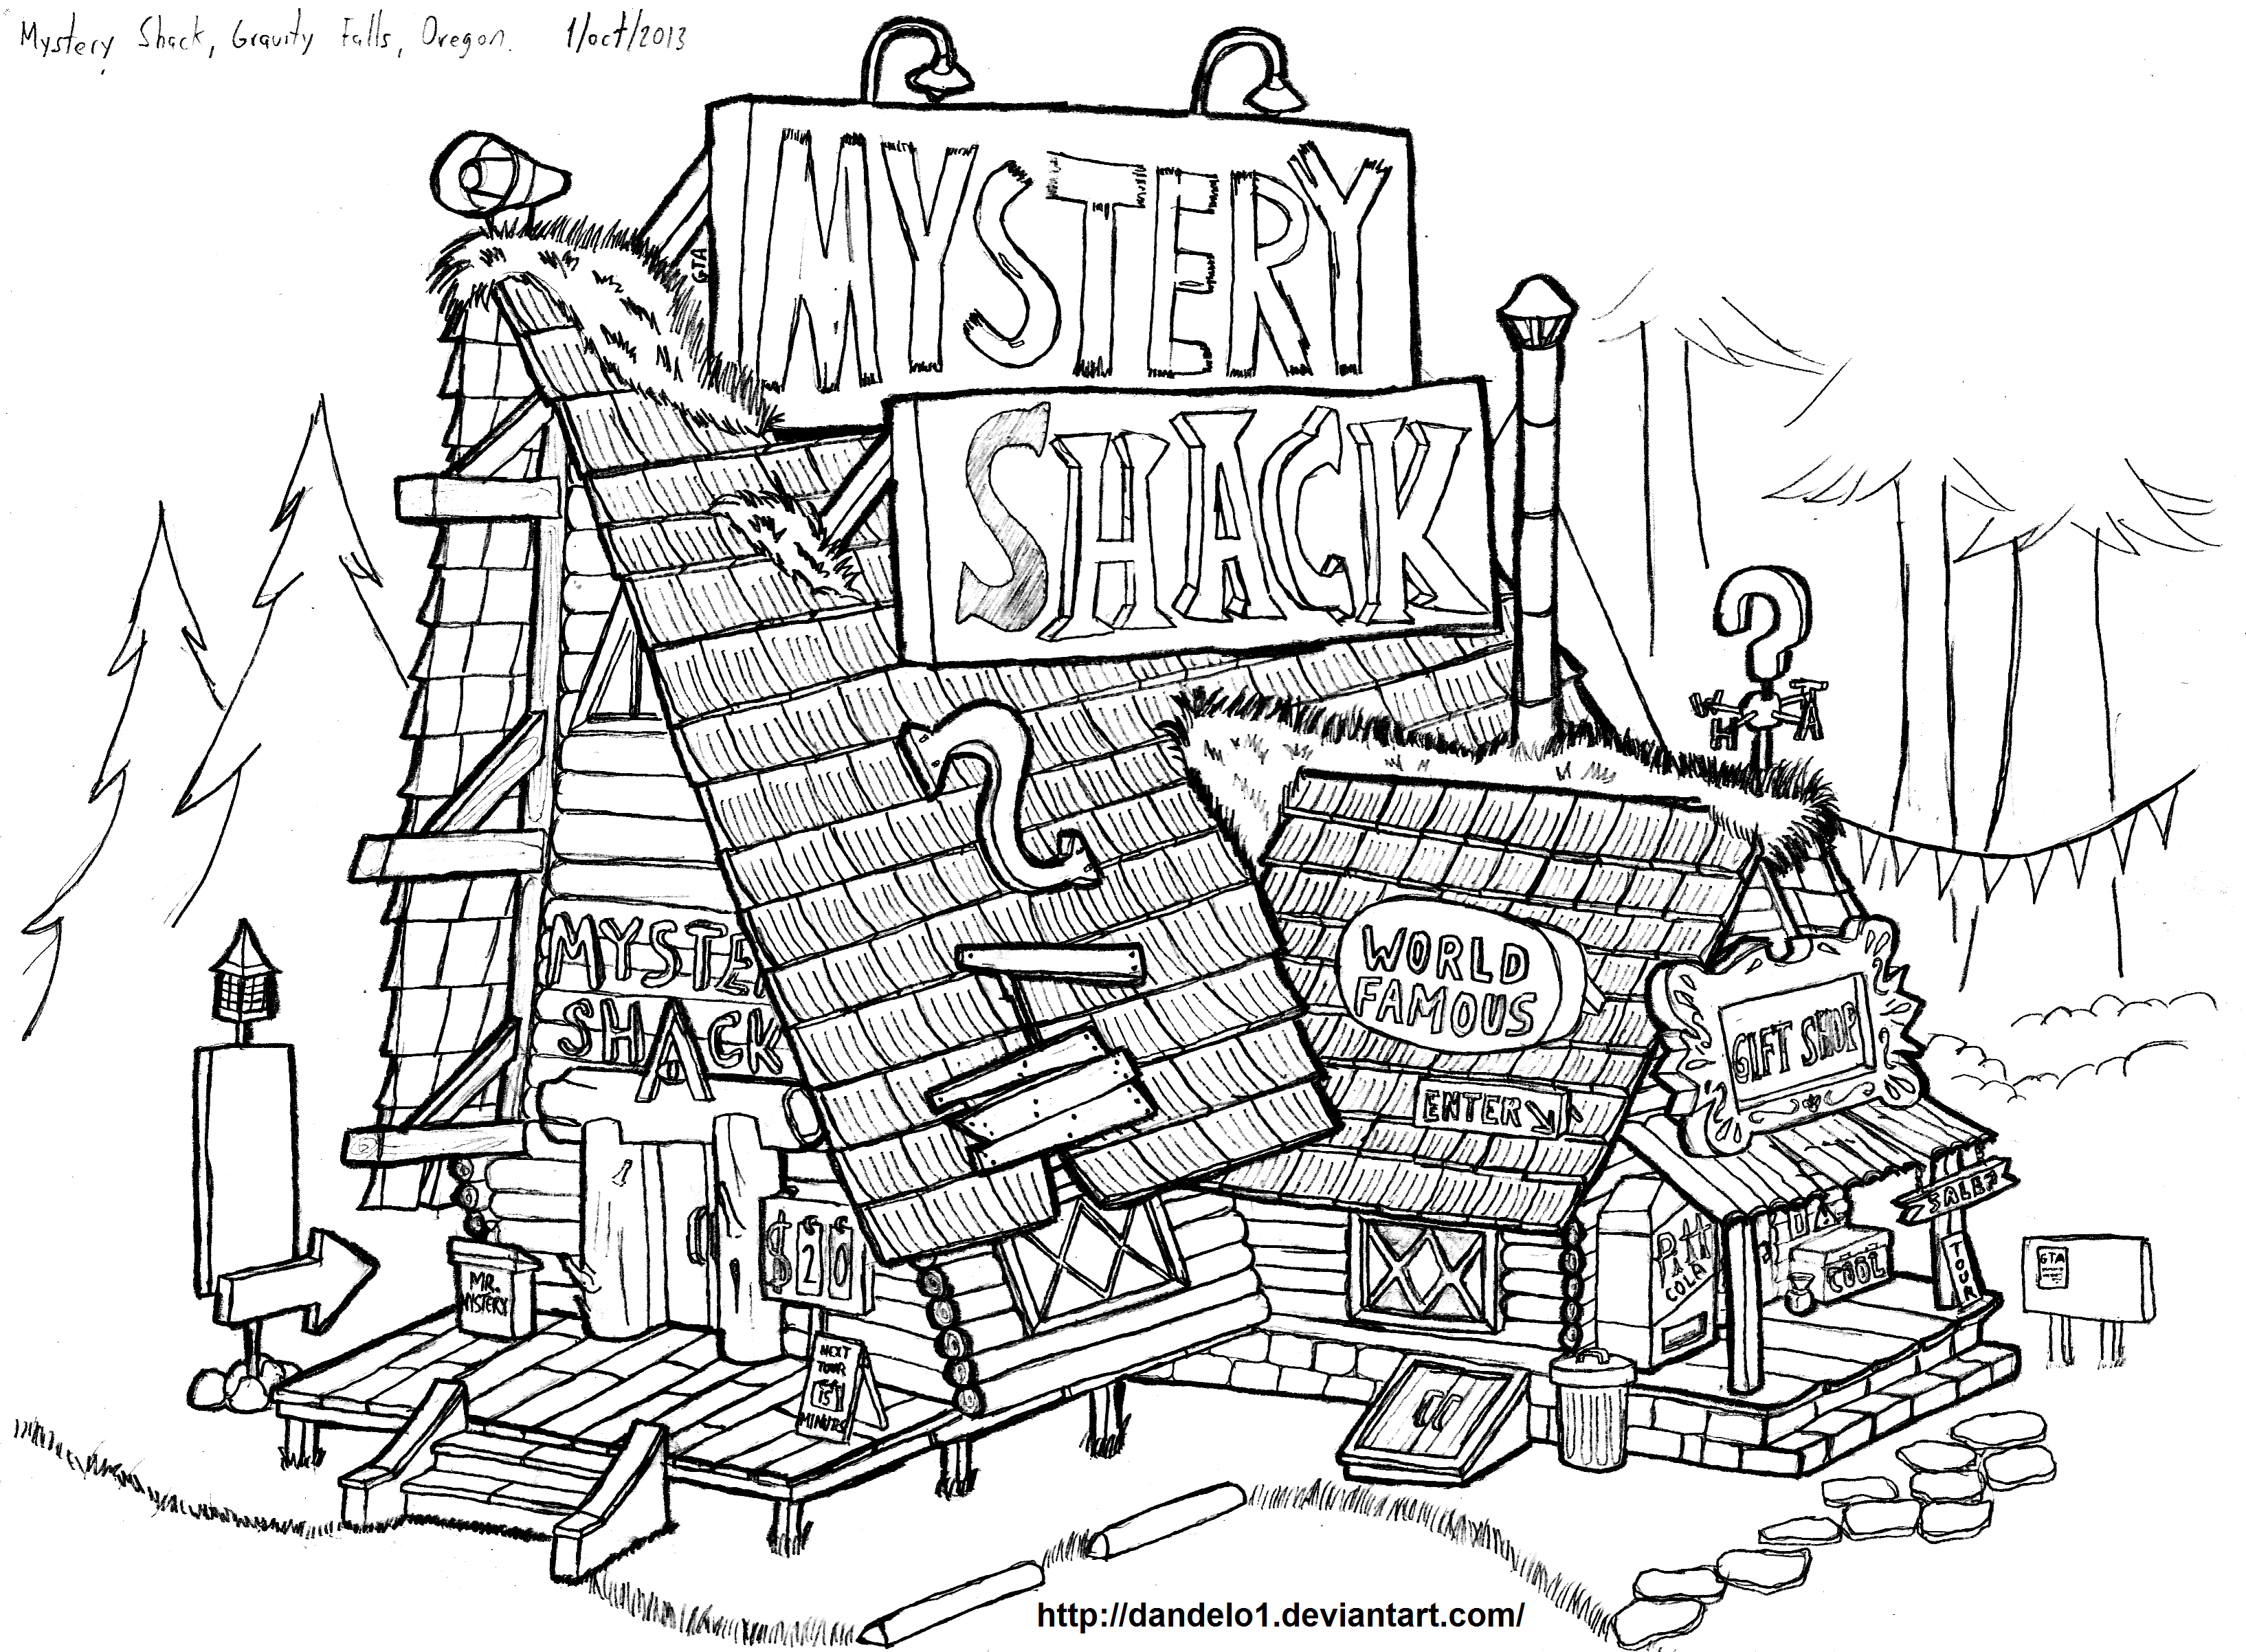 Mystery shack gravity falls oregon by dandelo1 on for Mystery coloring pages